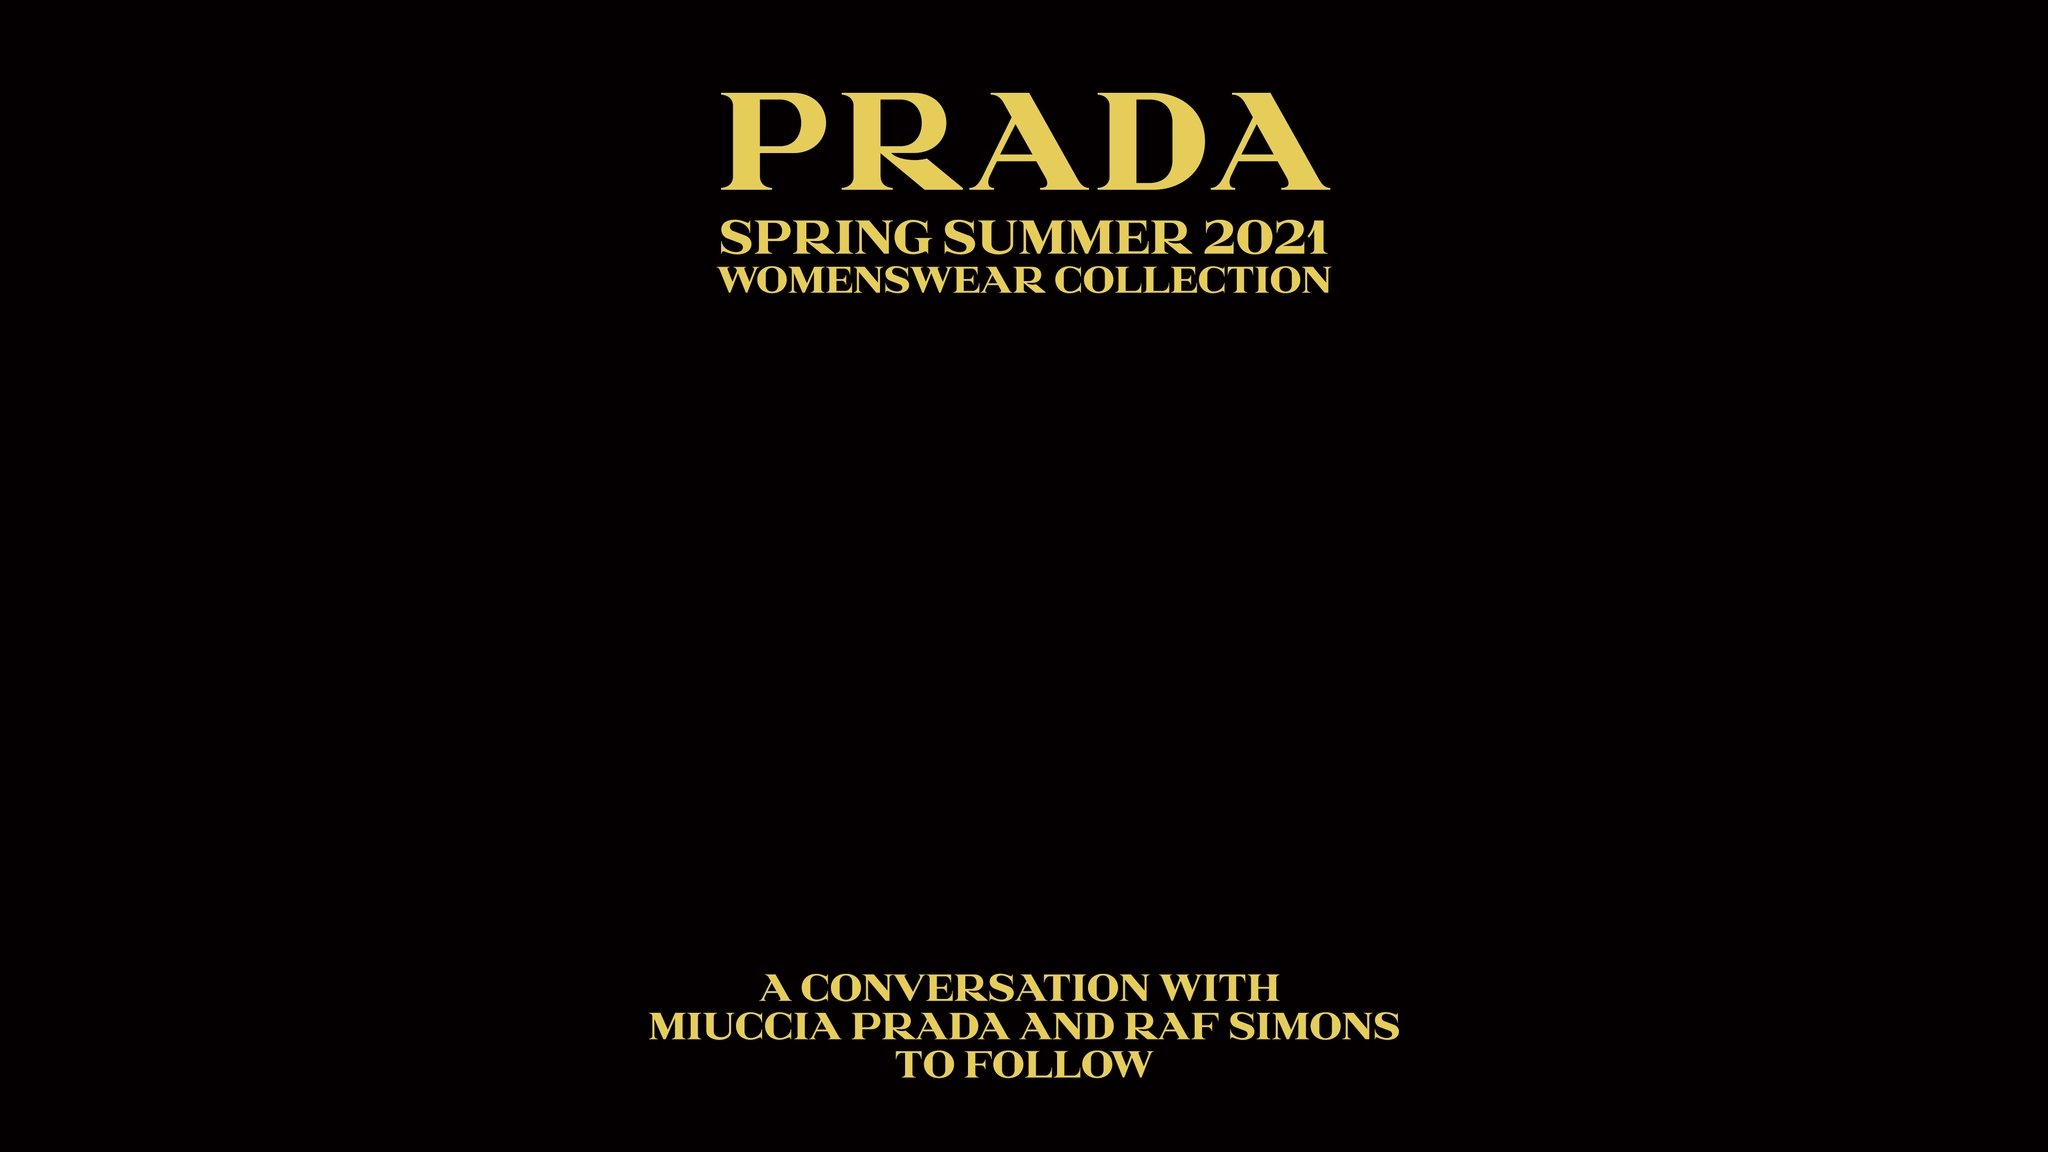 PRADA WOMENS WEAR SS21 LİVE STREAMİNG